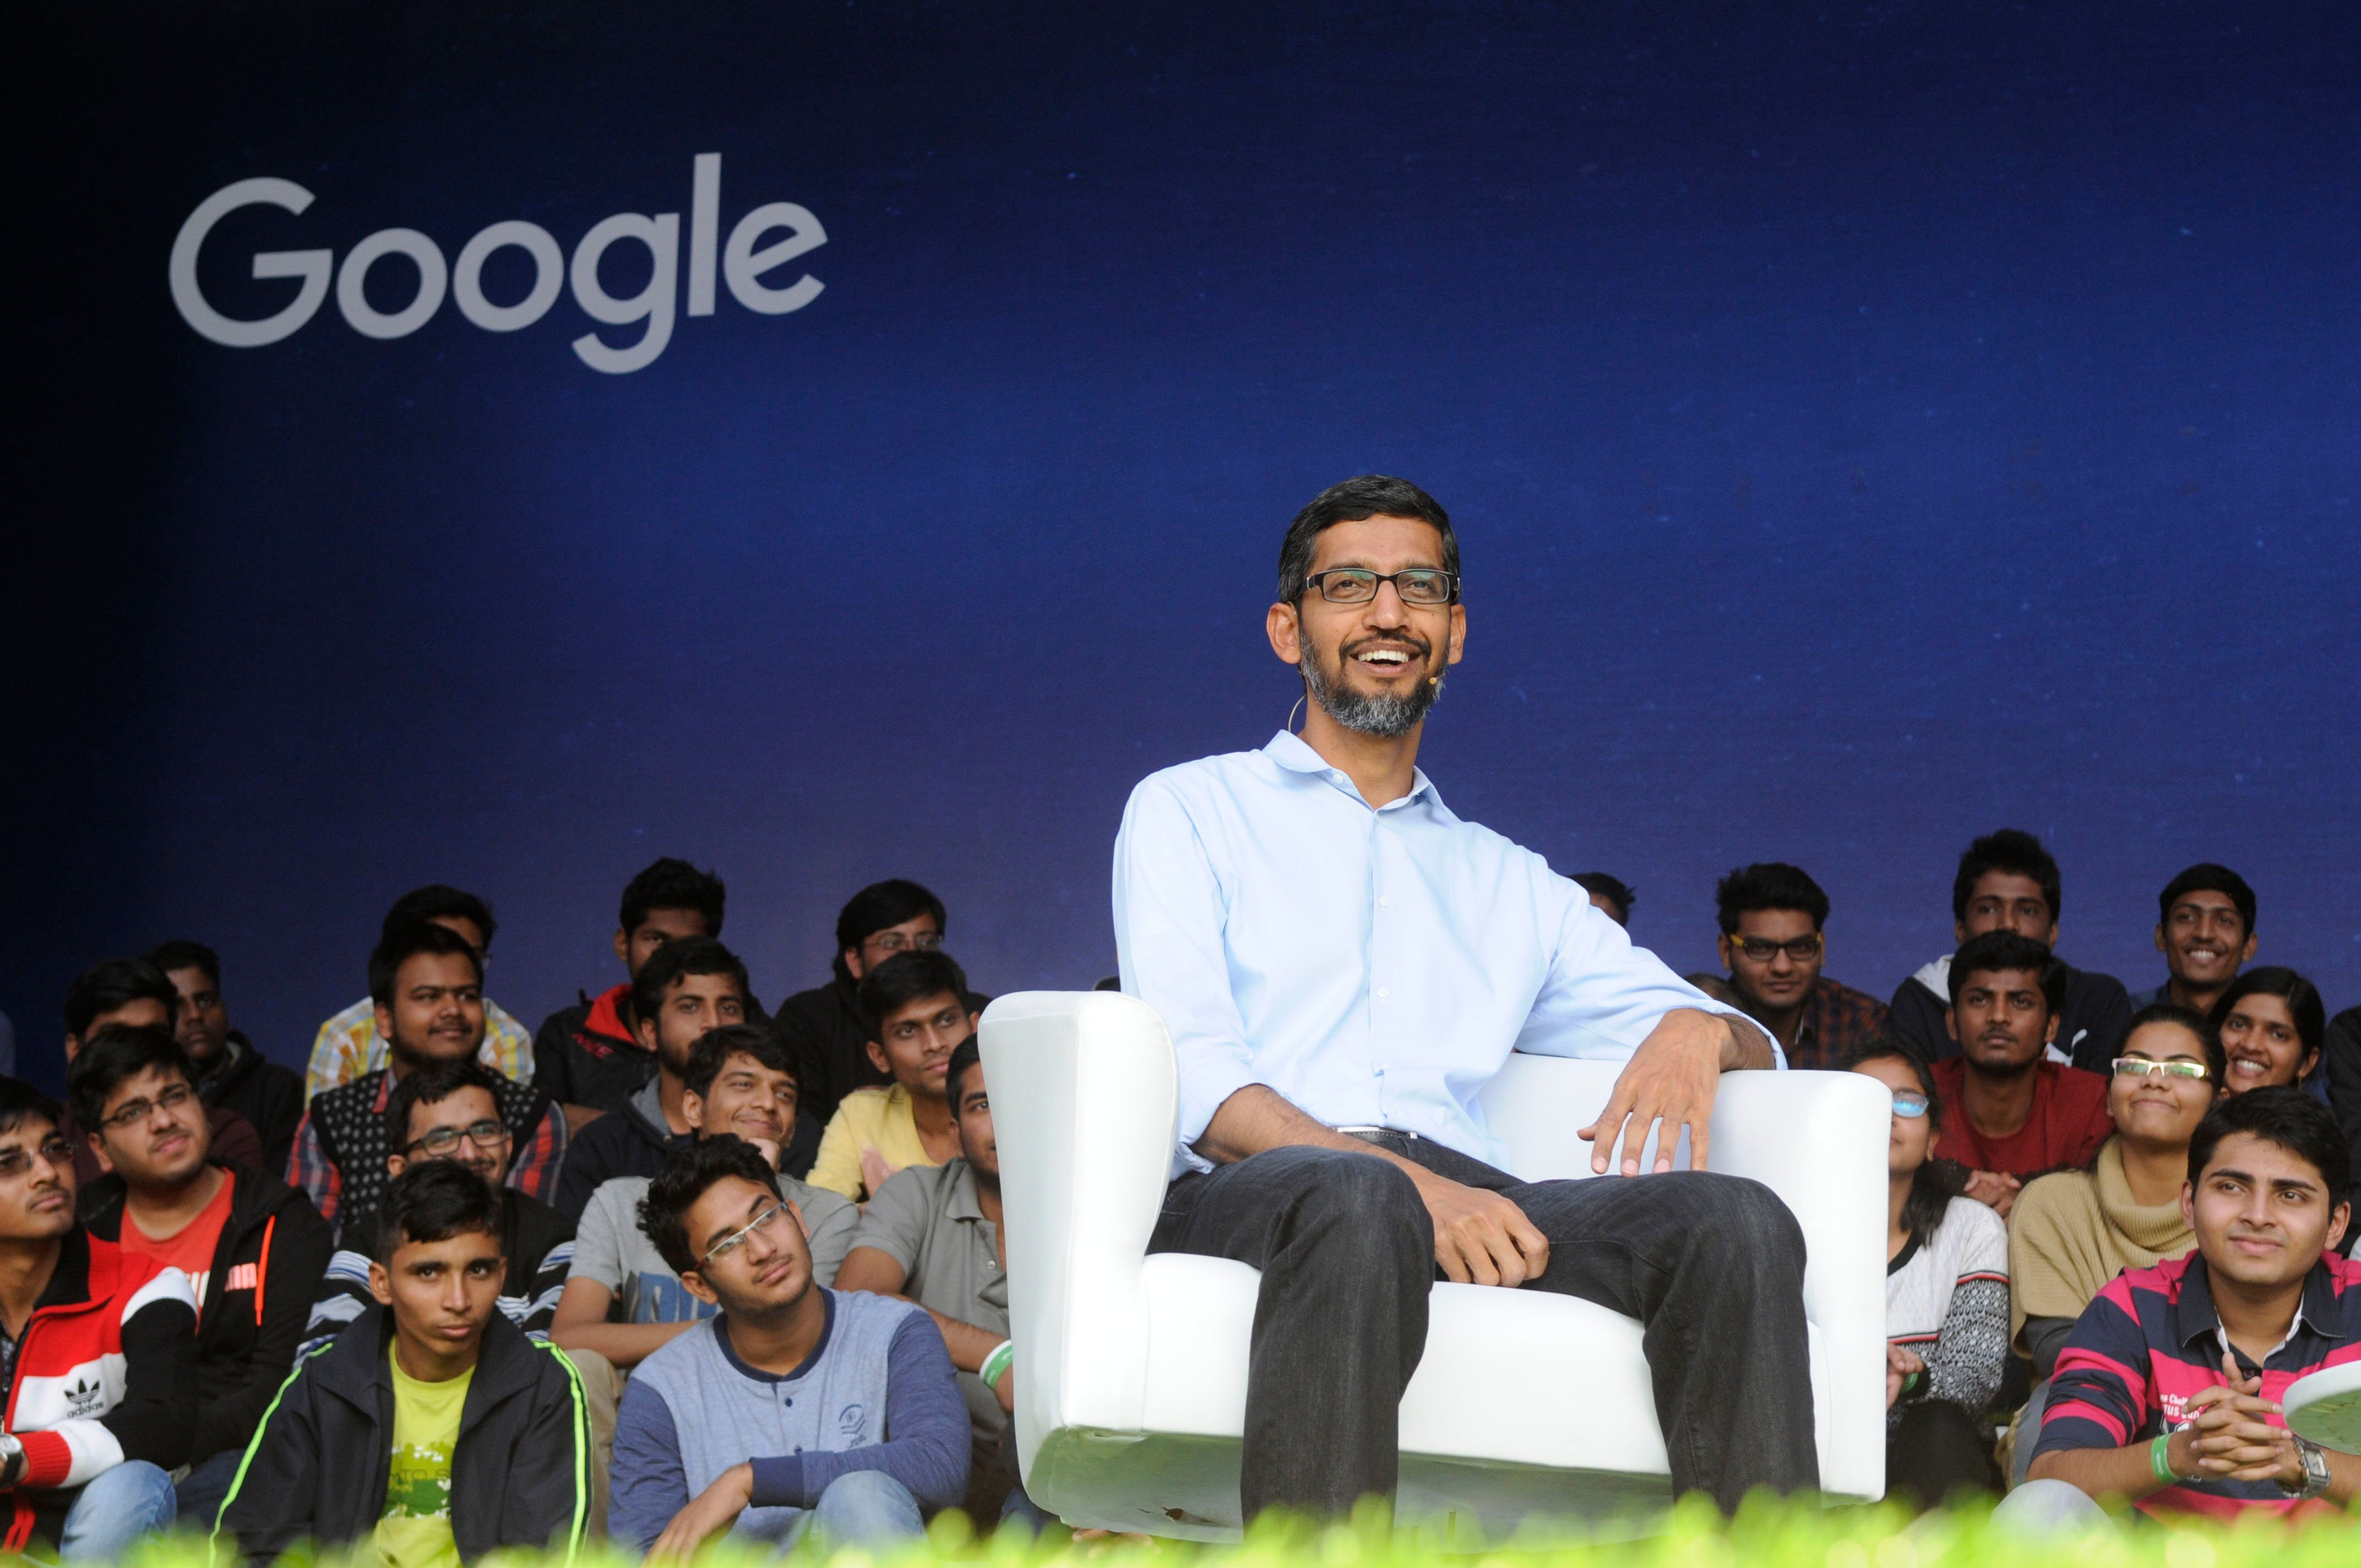 A Seven-Year Old Asked Google's CEO For A Job And He